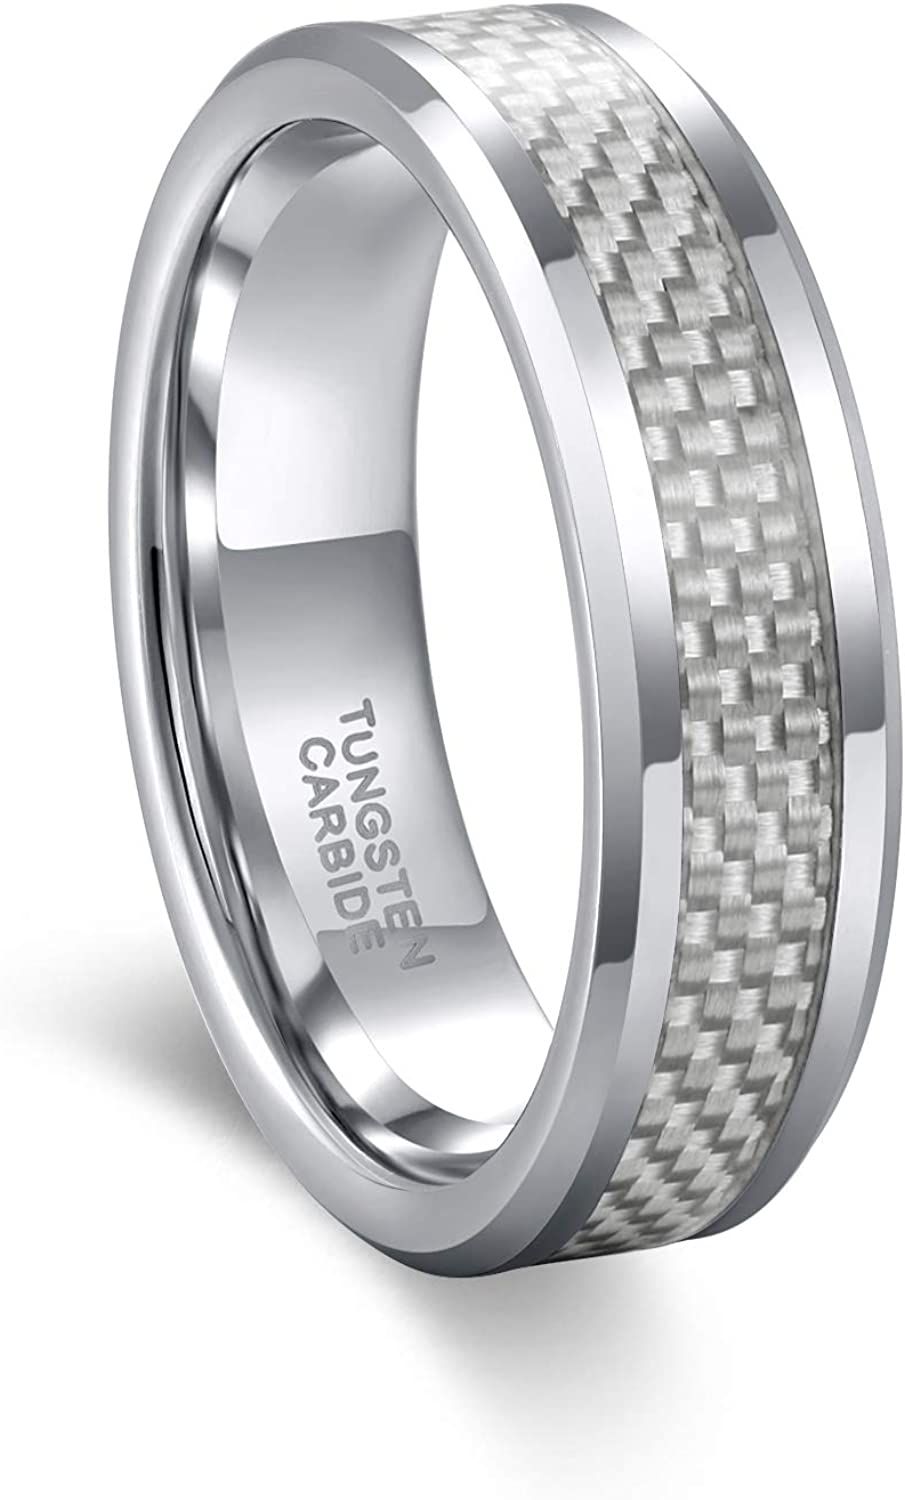 Frank S.Burton 6mm 8mm Tungsten Carbon Fiber Rings for Men Women Comfort Fit Wedding Bands Size 4.5-15